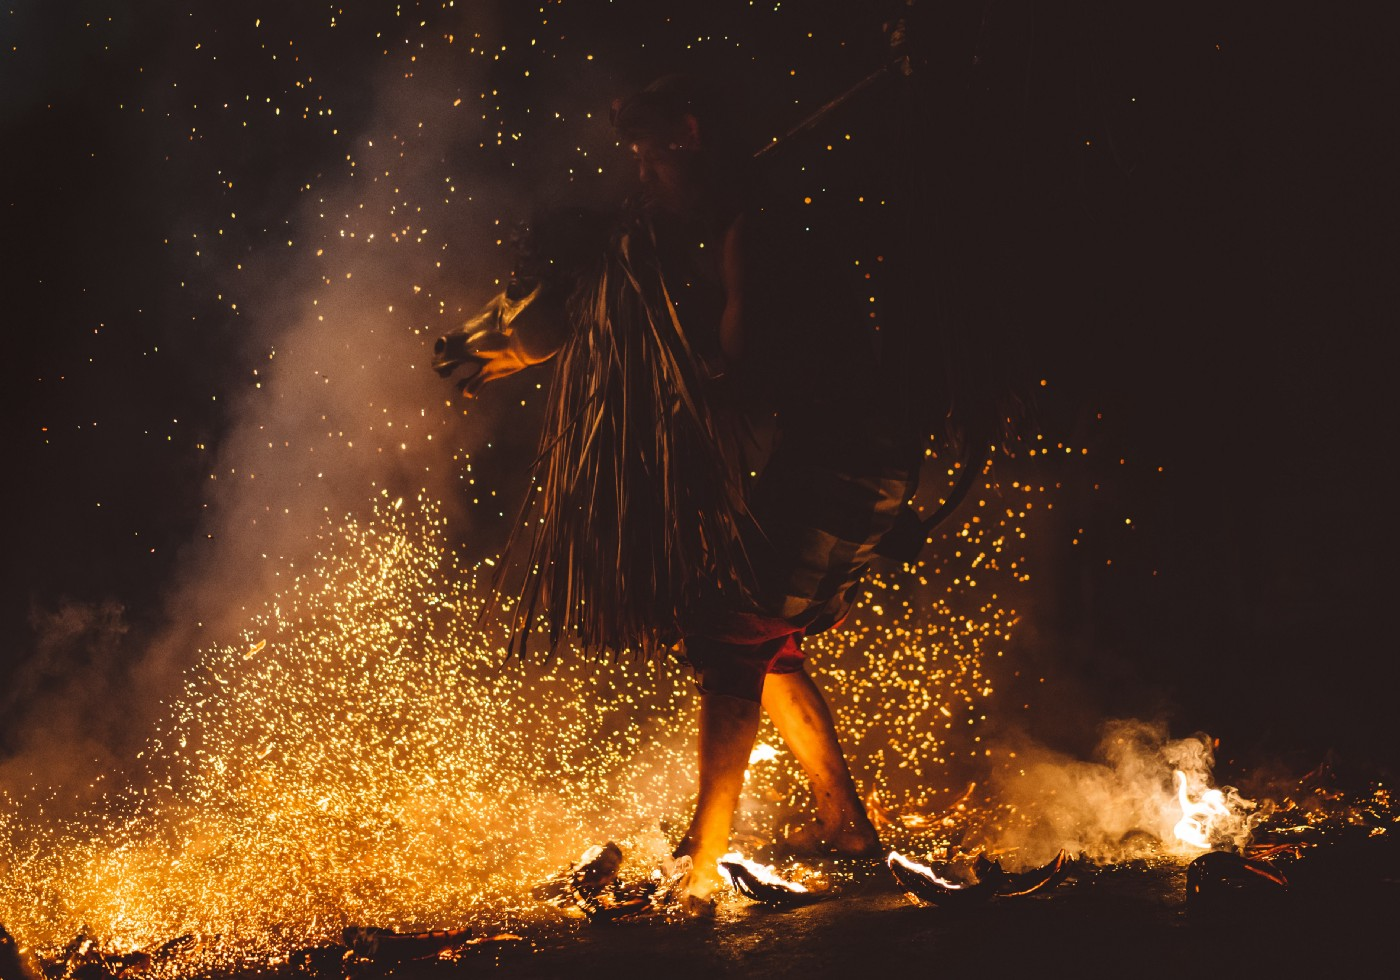 An image of a person dancing in front of fire.